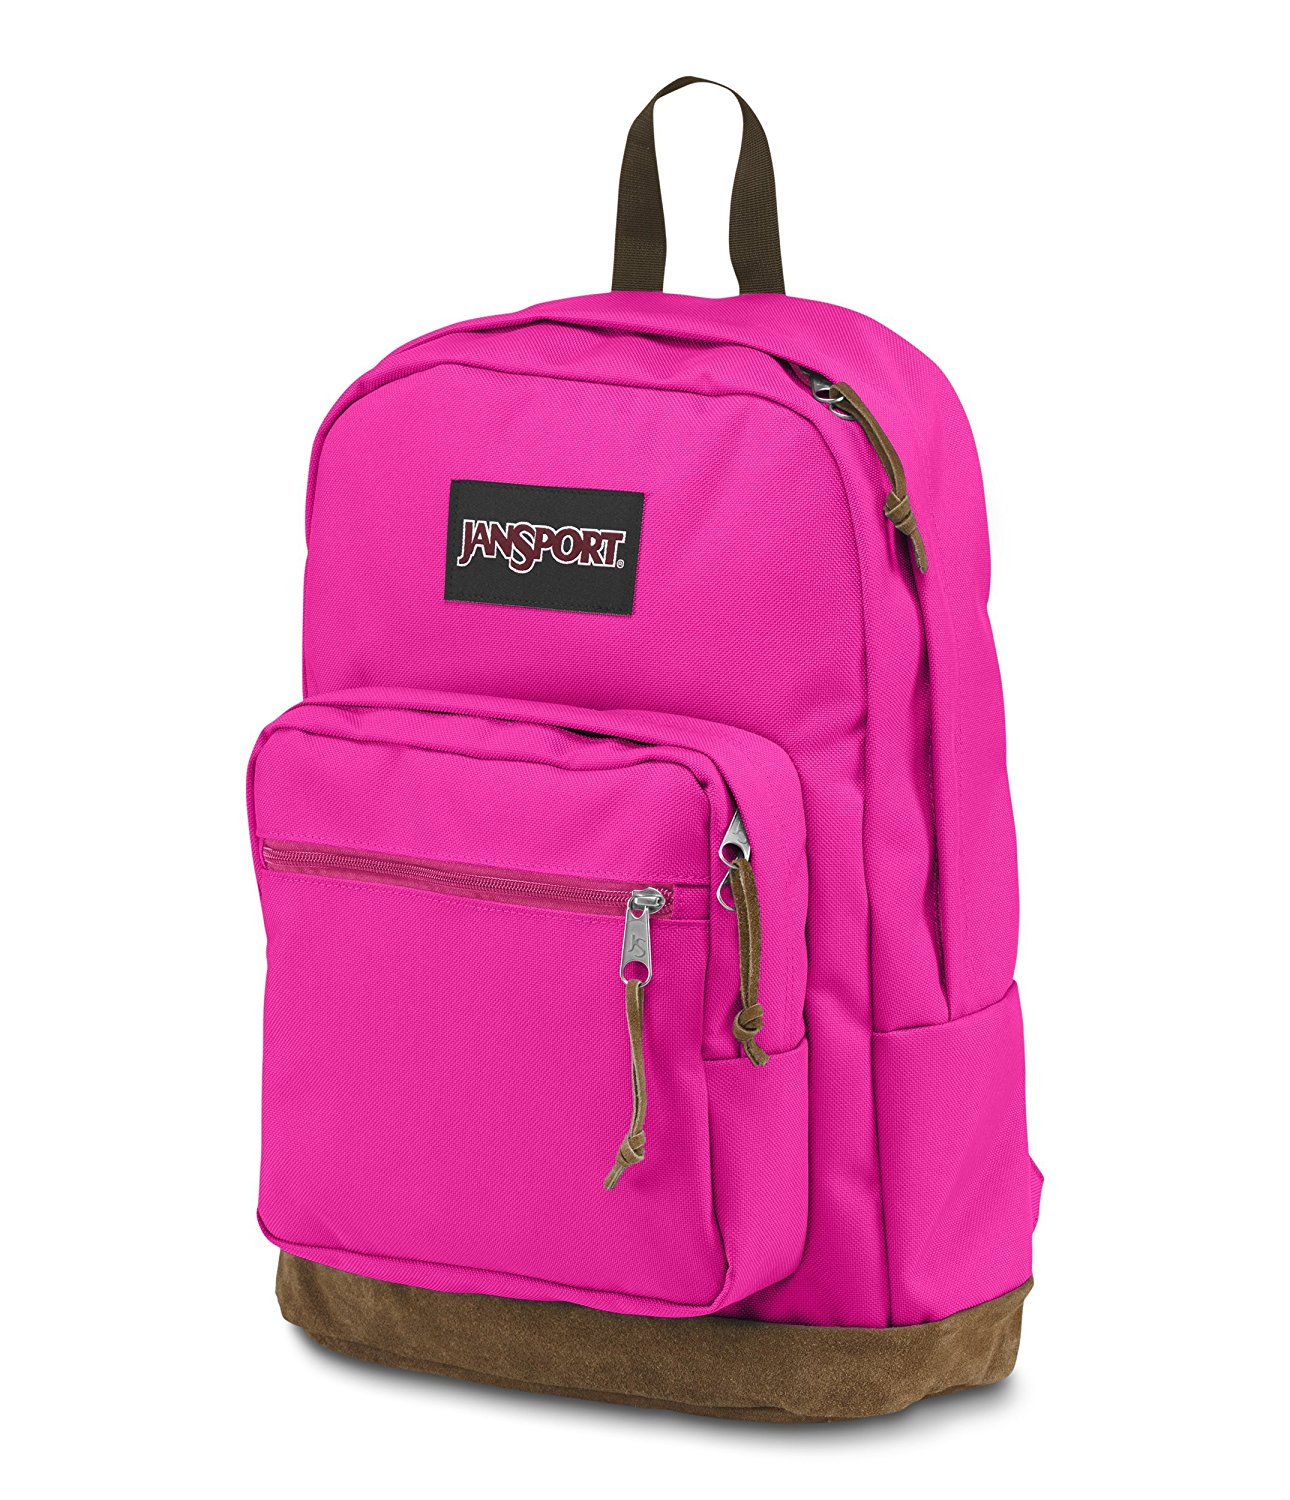 JanSport Right Pack Backpack School Bag for Girls (and Boys)